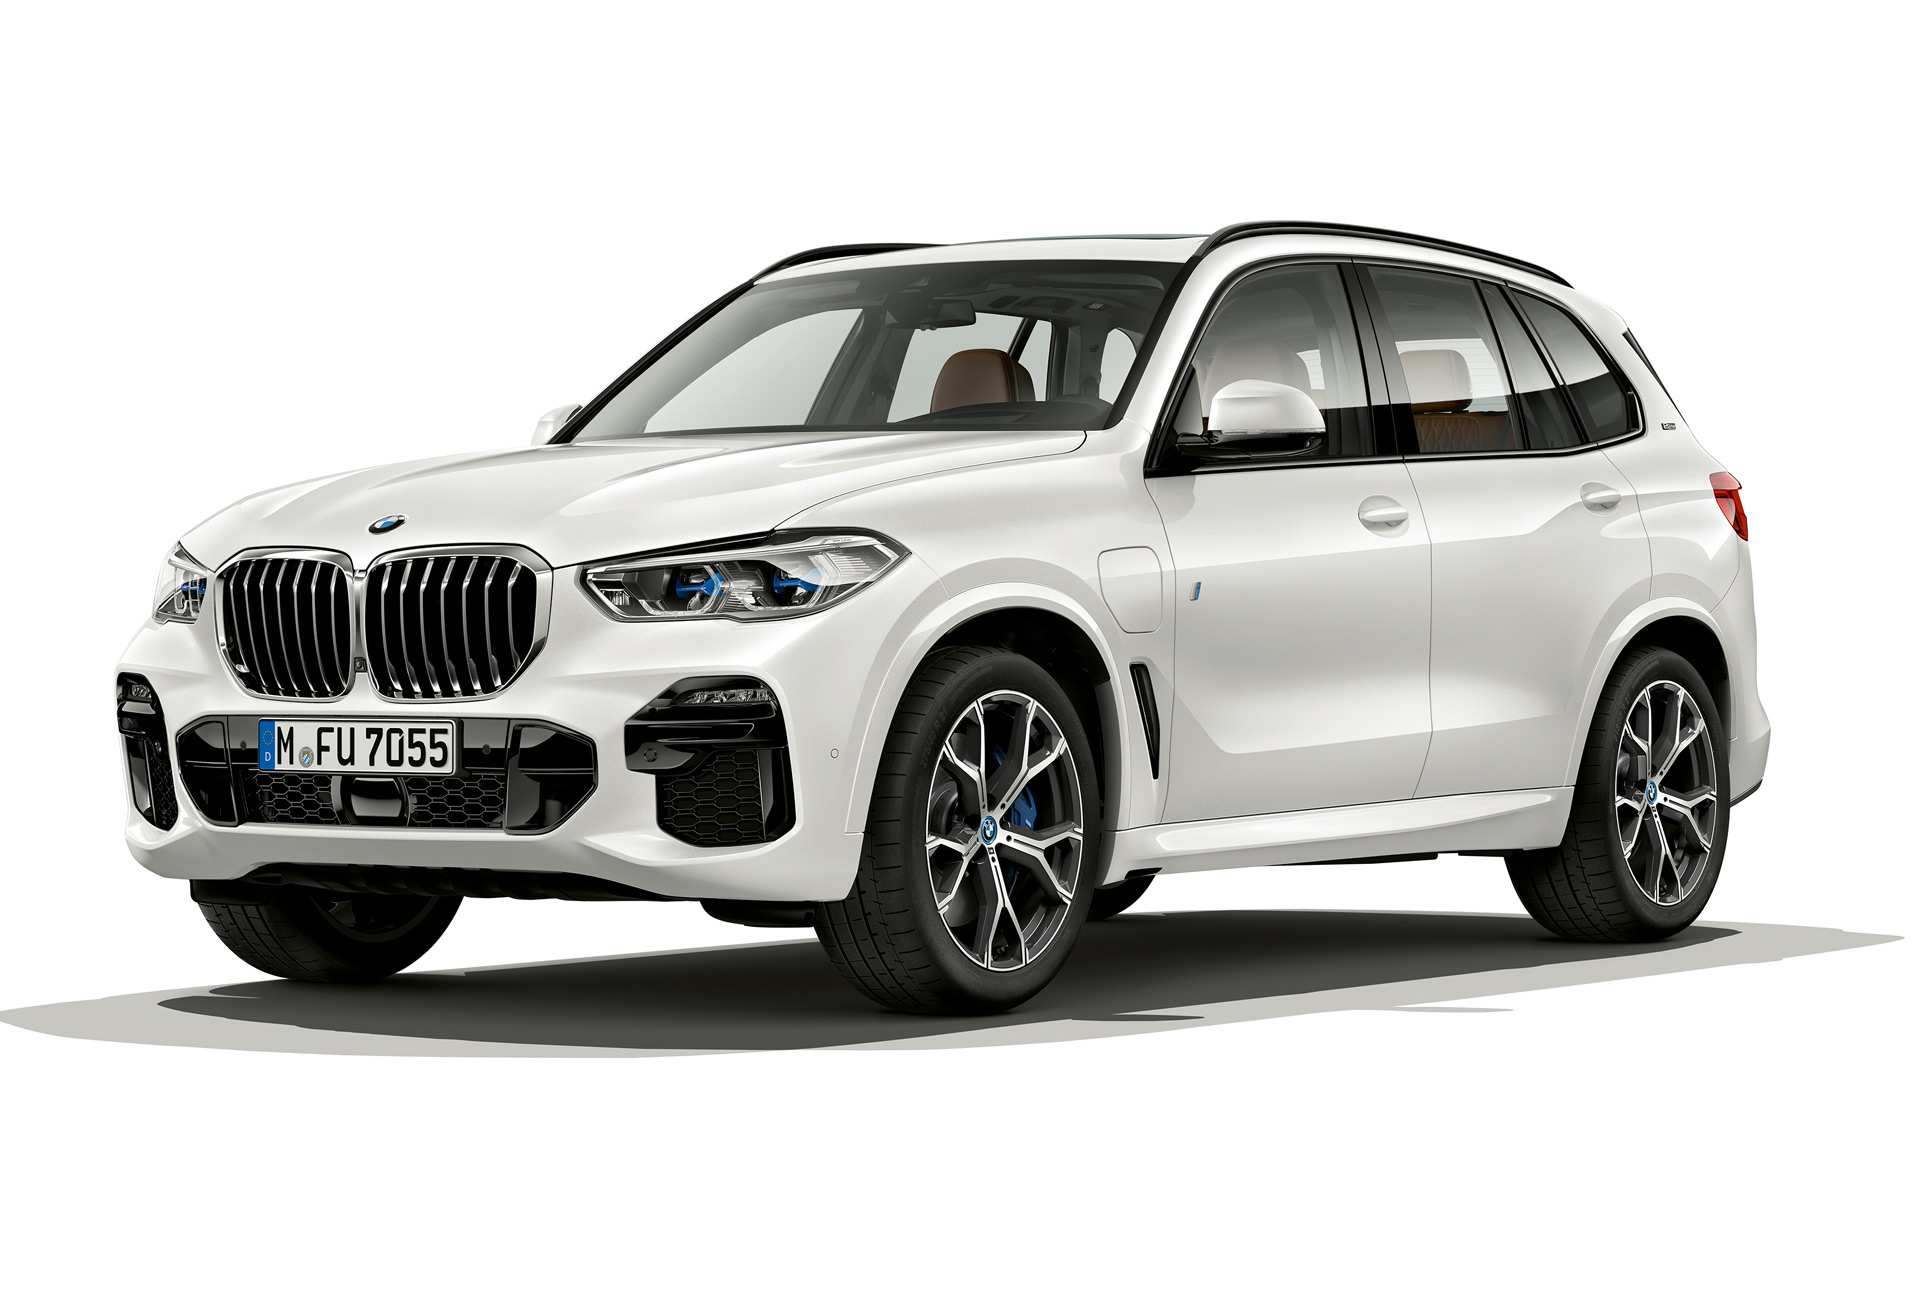 57 All New When Does The 2020 Bmw X5 Come Out Performance